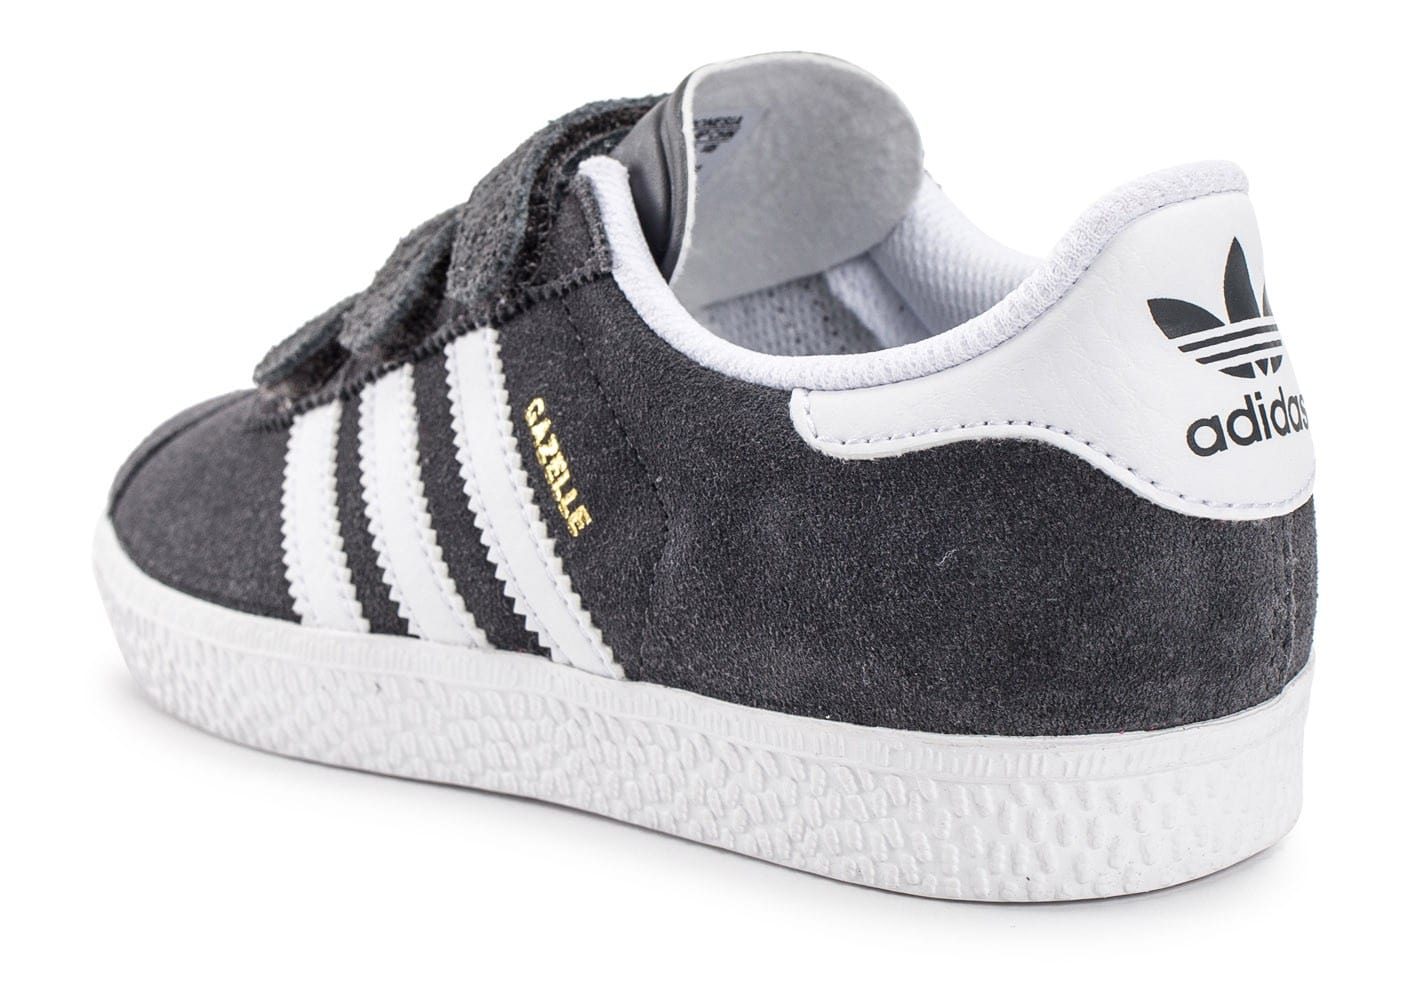 Adidas Gazelle 2 baskets